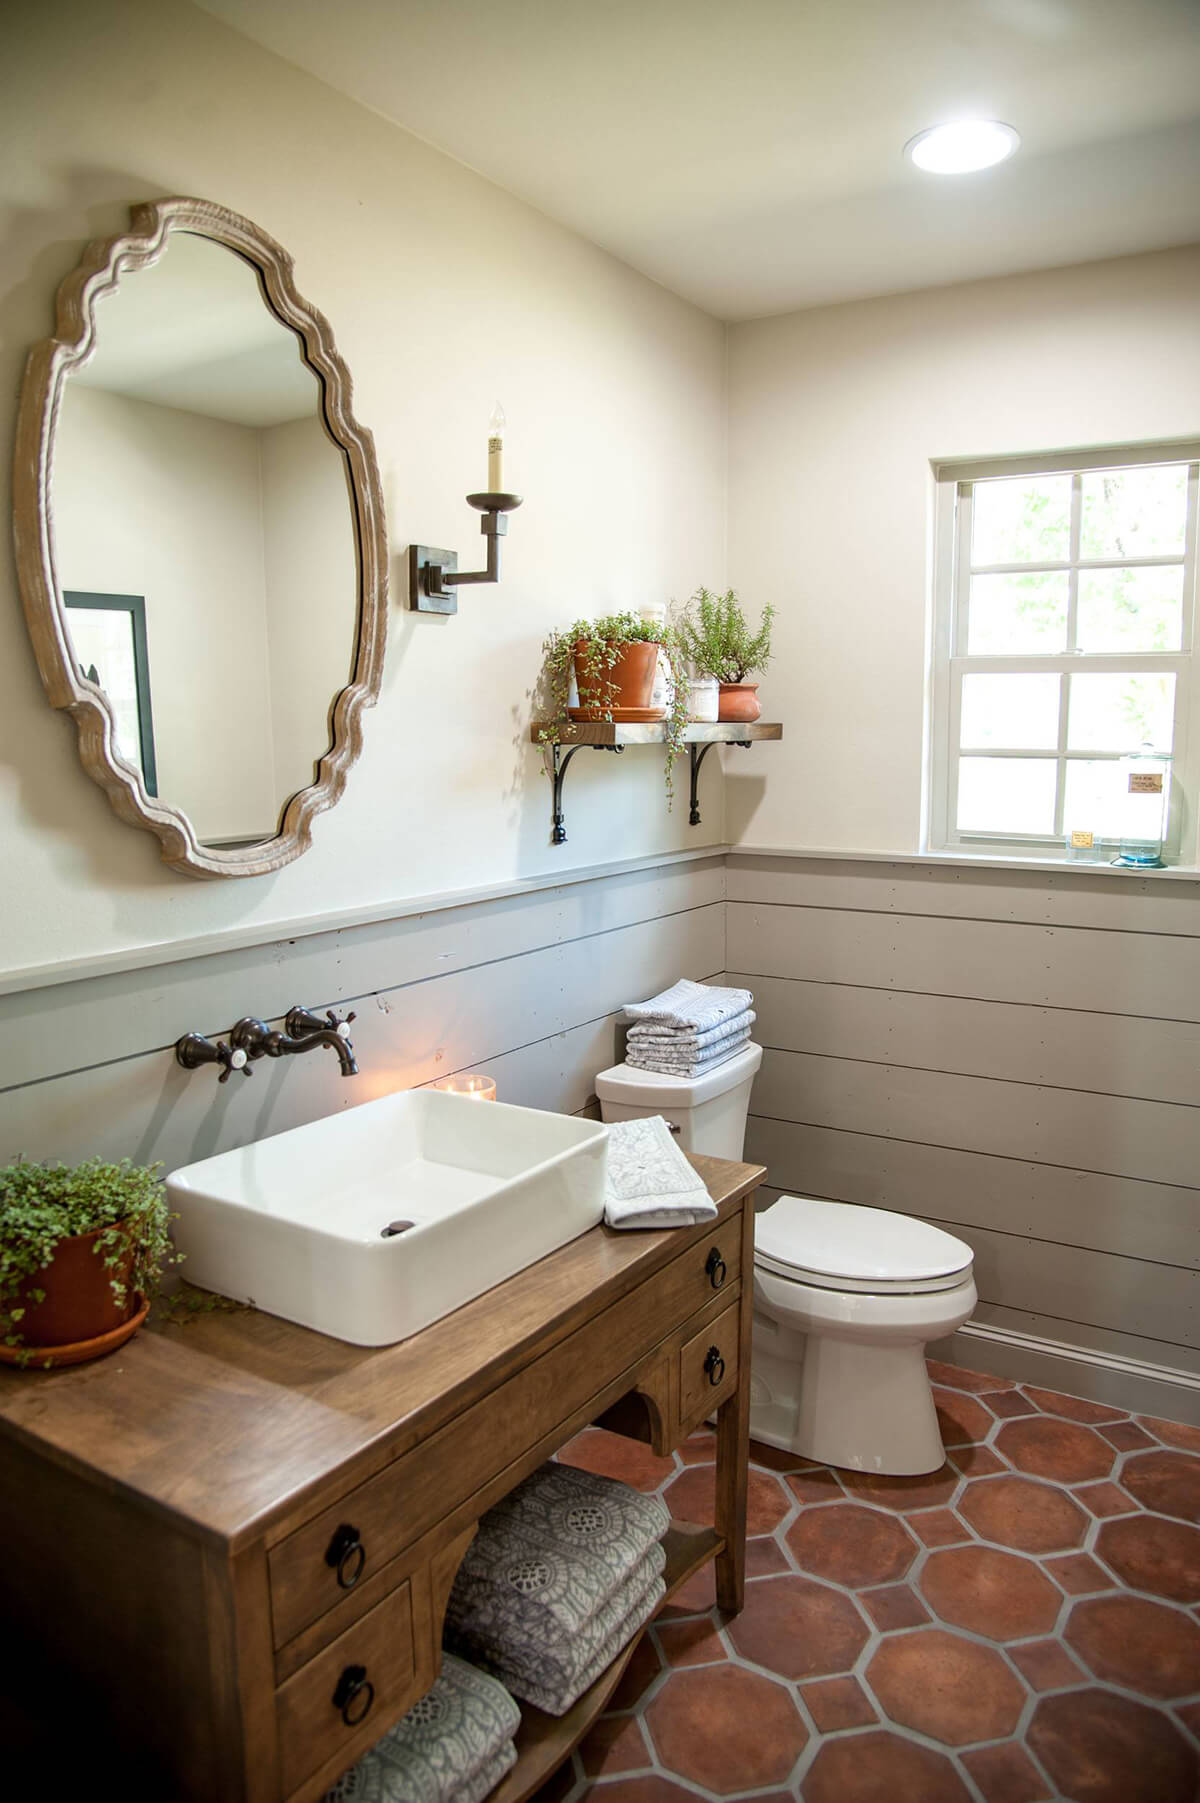 Bowl Sink Rustic Vanity with Storage